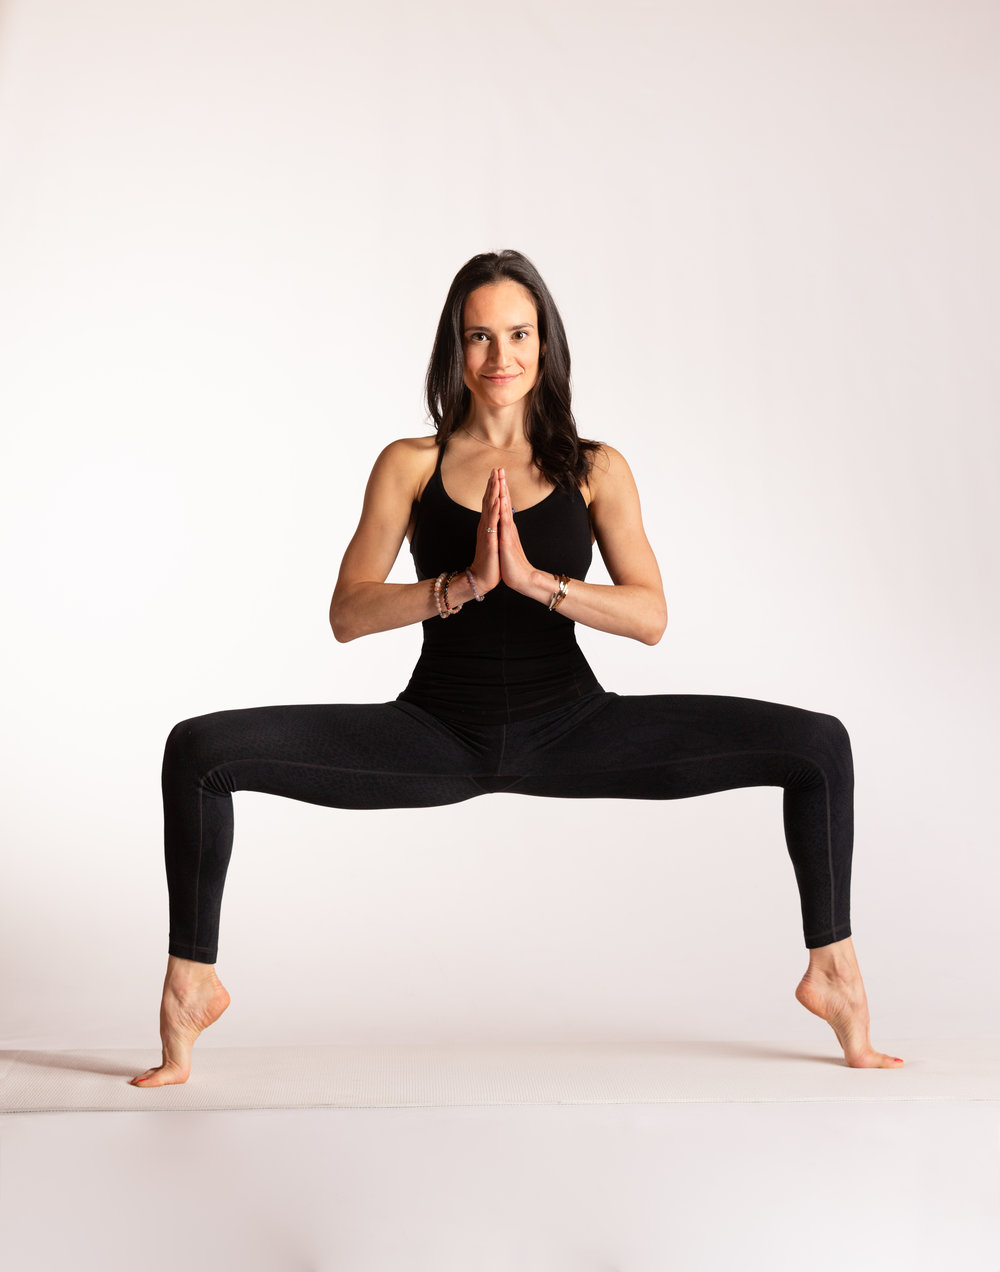 SLP_Faculty_Asana_S5A9345-Edit.jpg